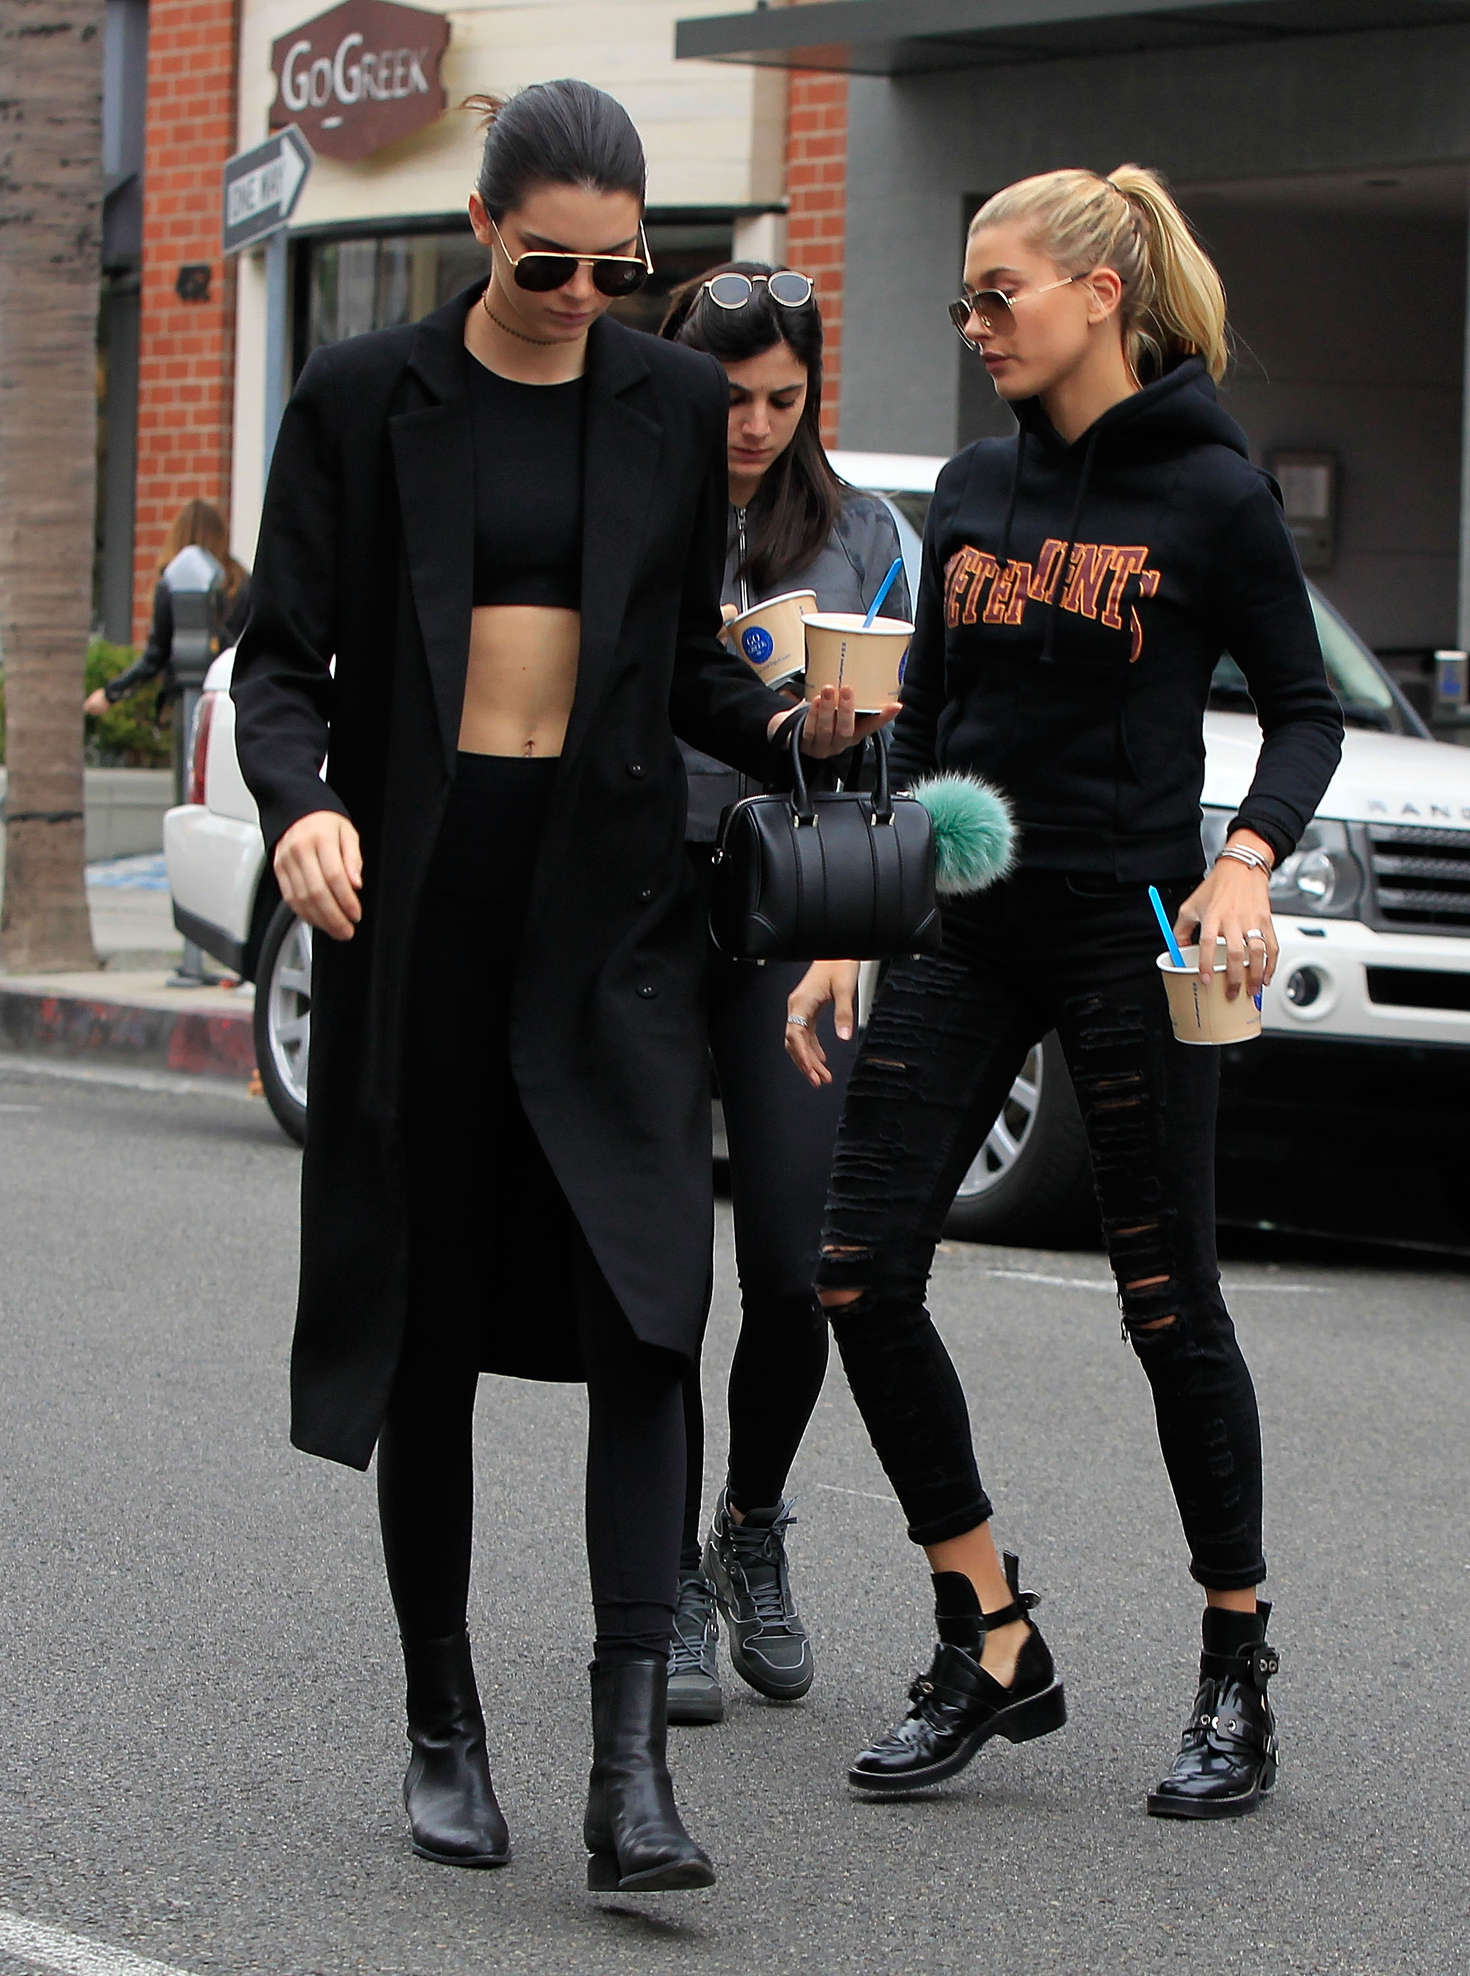 Hailey Baldwin & Kendall Jenner out and about in Los Angeles